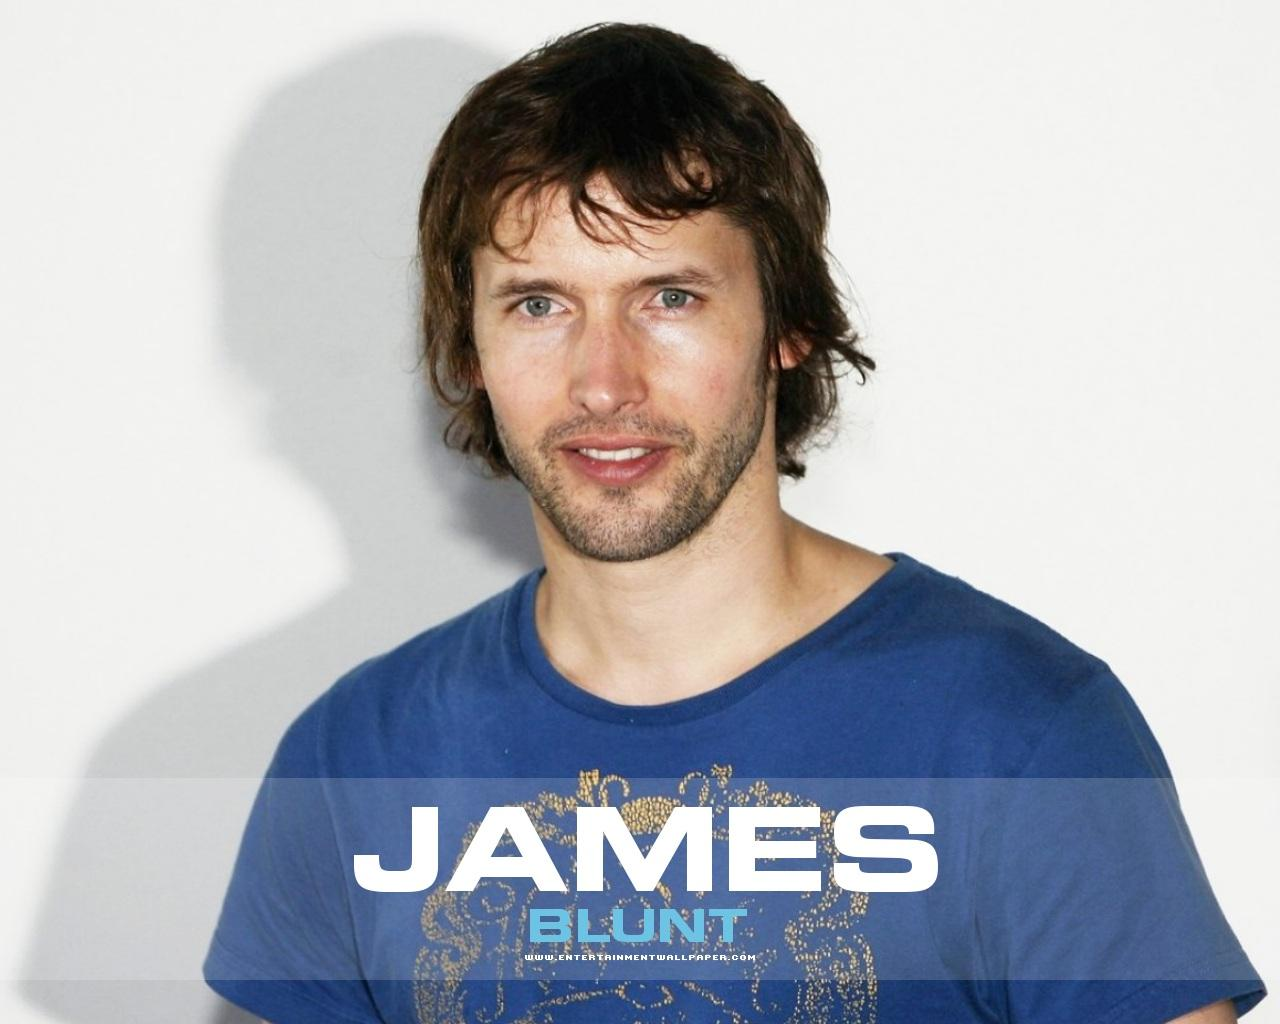 JAMES BLUNT WALLPAPER - IN BLUE